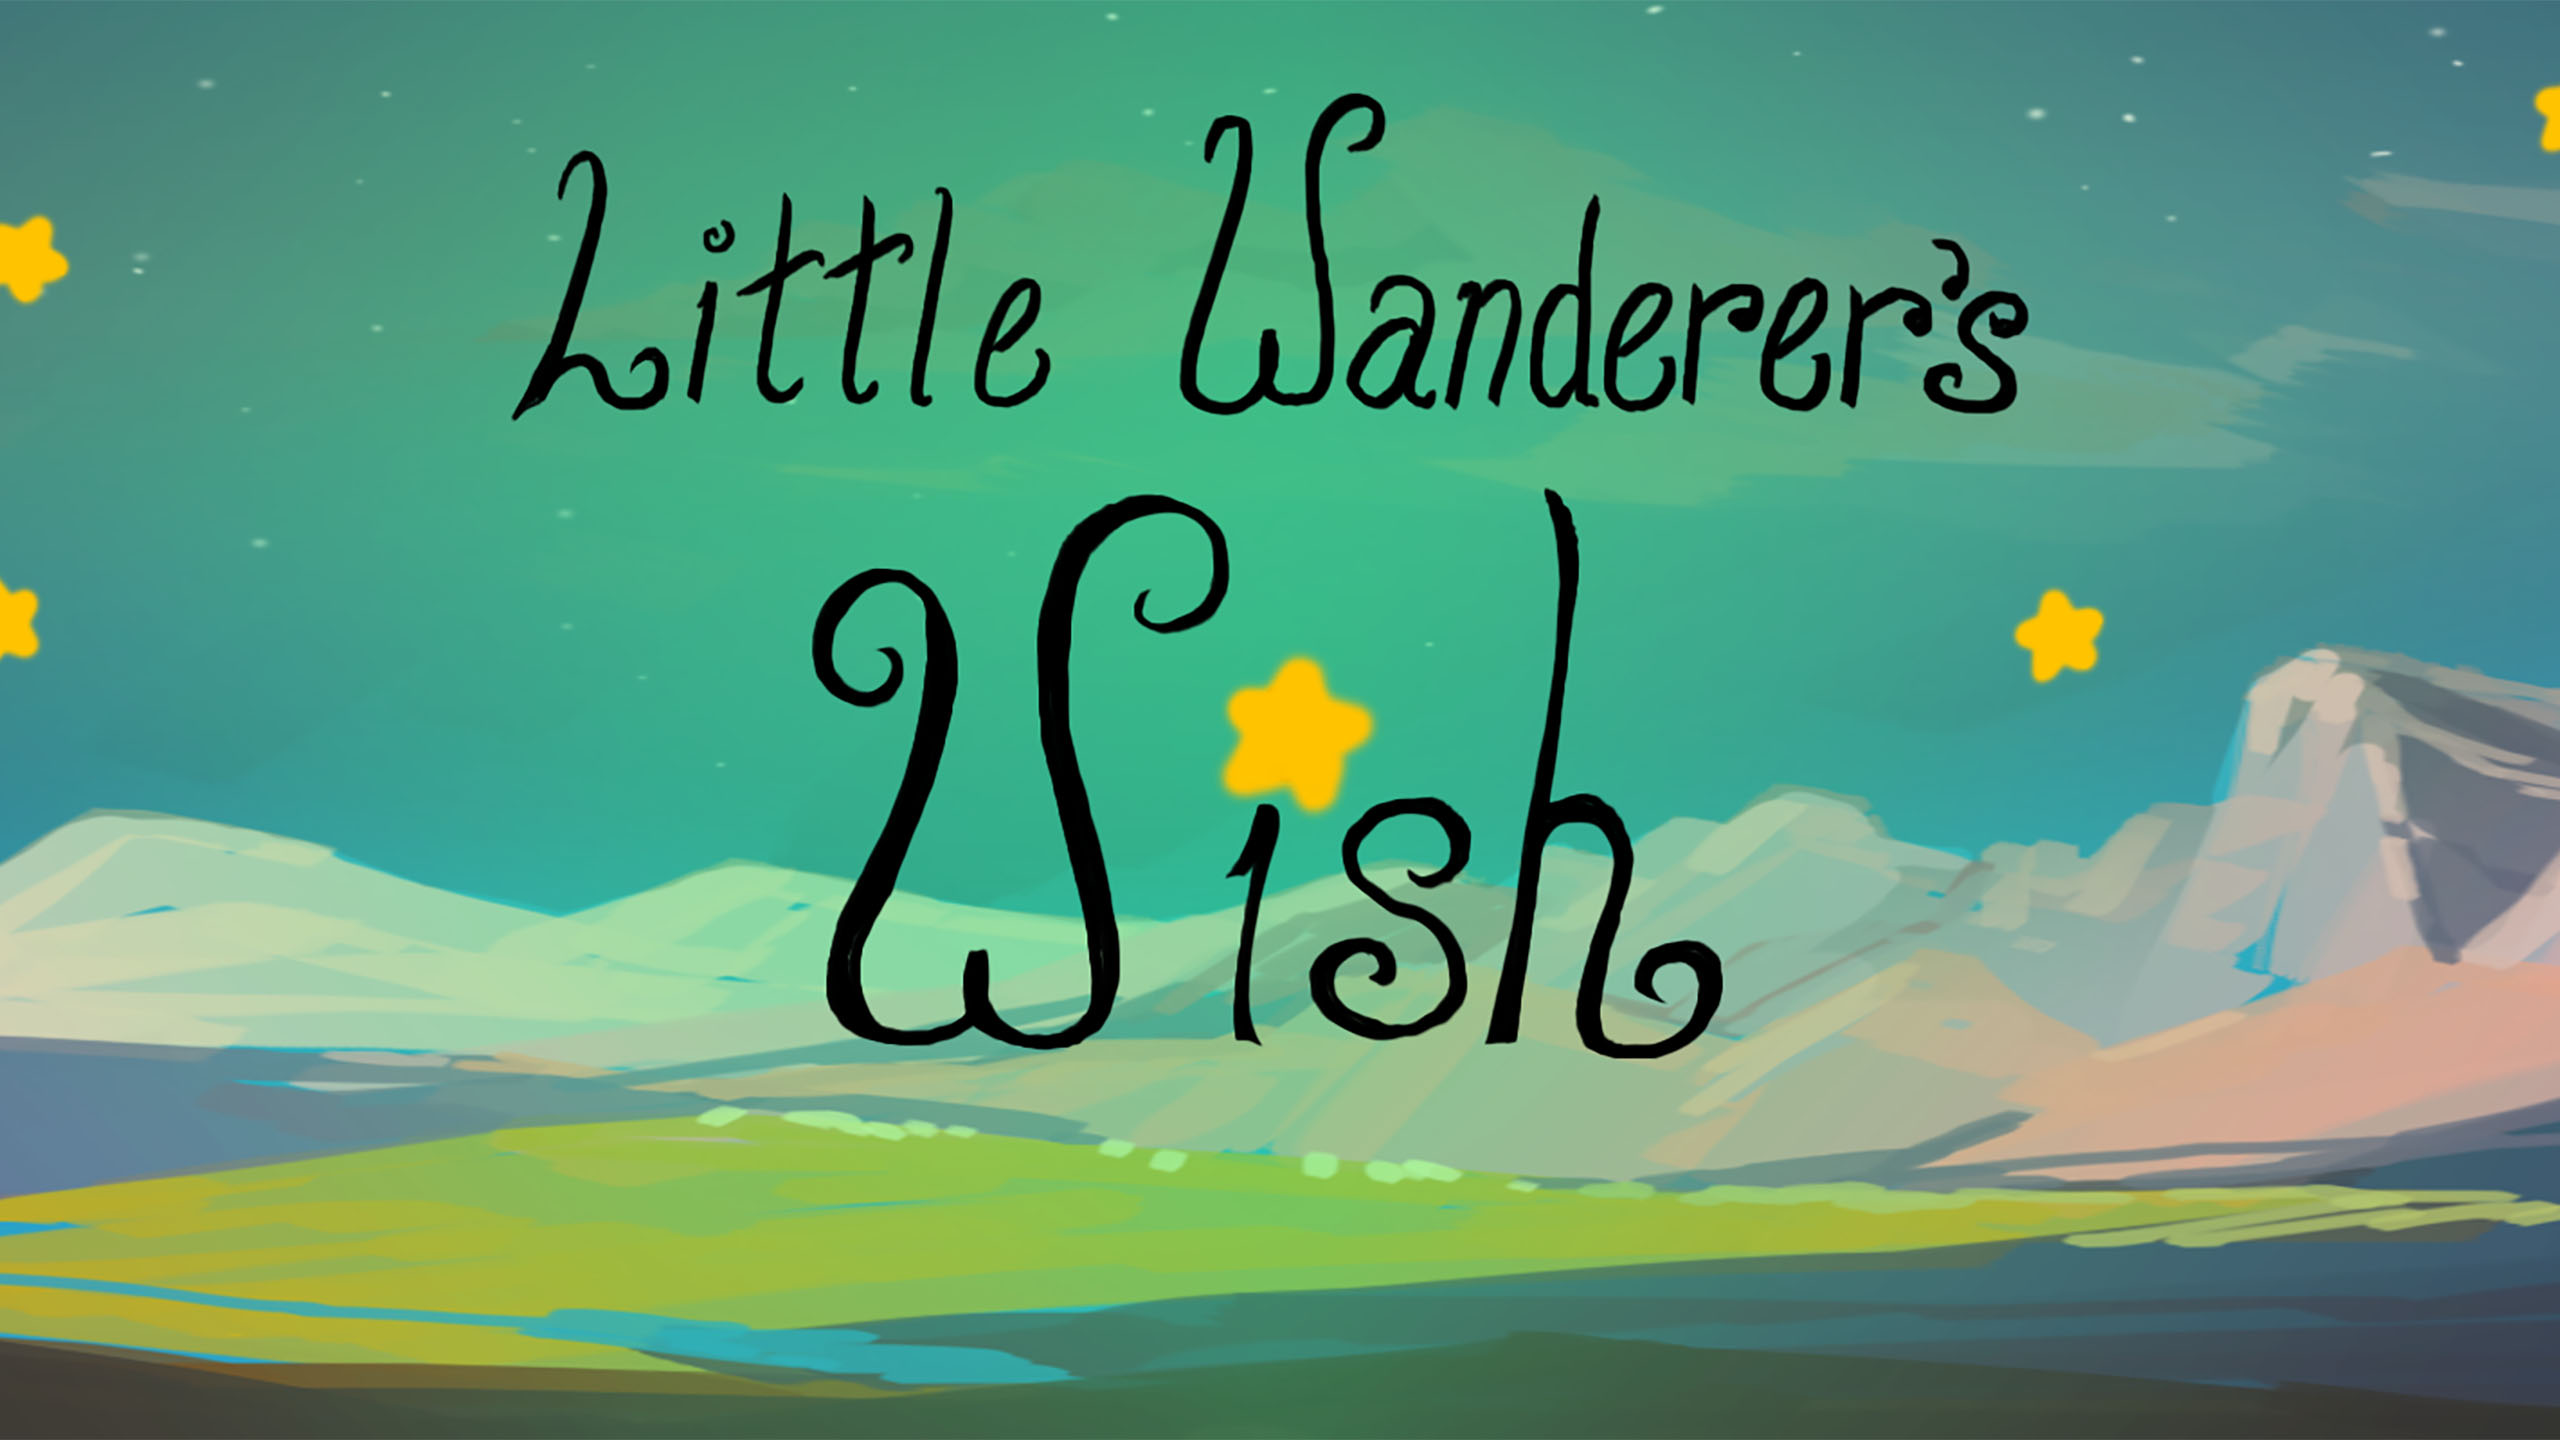 Little Wanderer's Wish